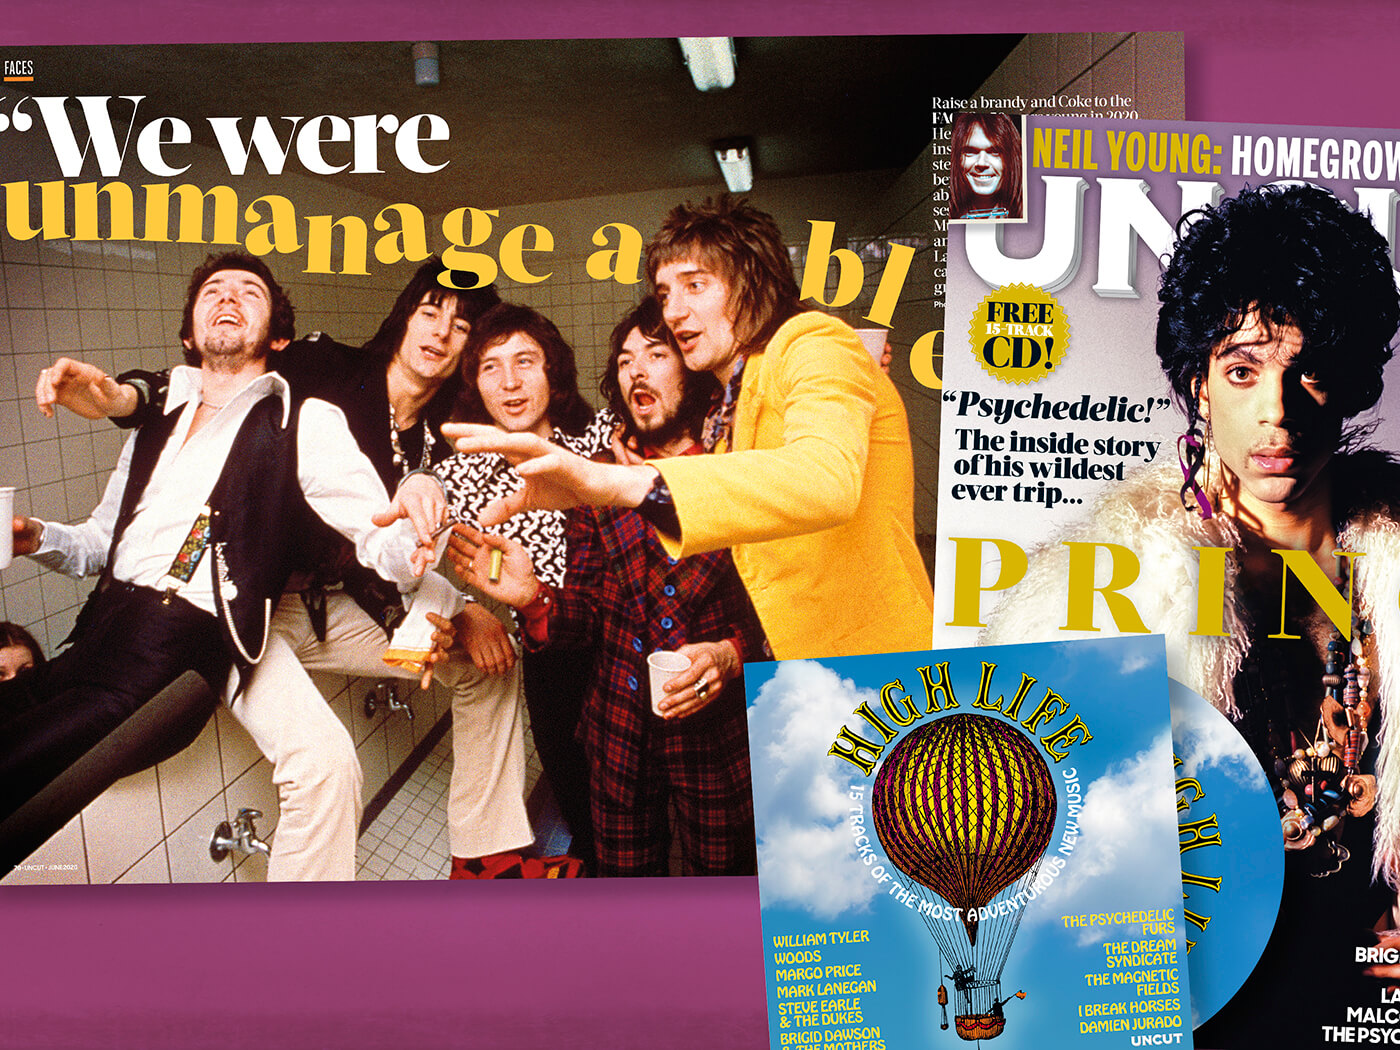 """Kenney Jones on the Faces: """"We were unmanageable!"""""""